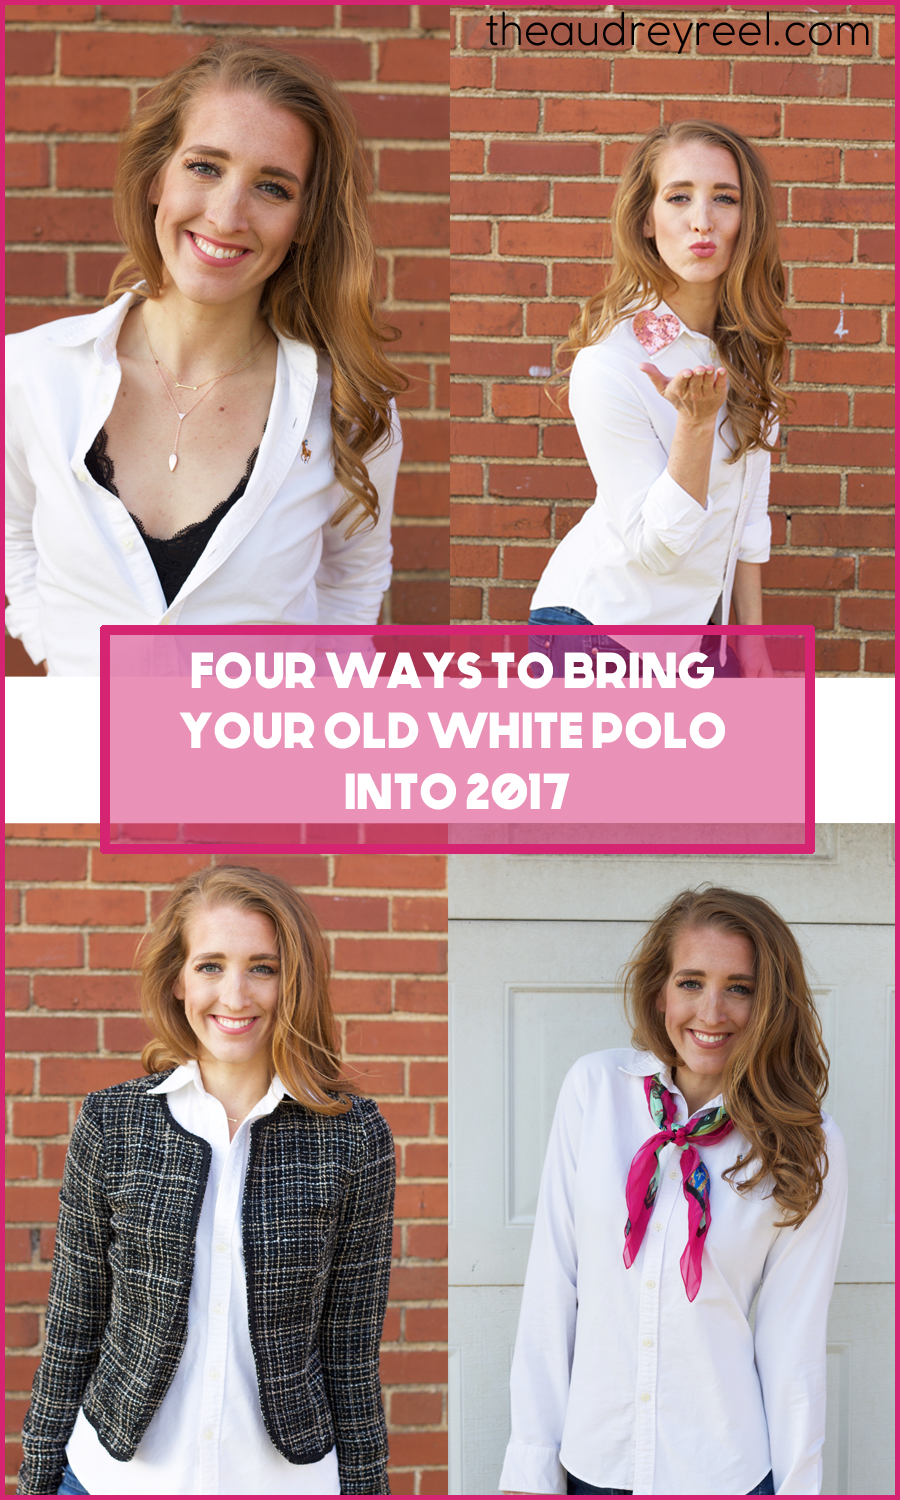 Modernize white polo into 2017 1